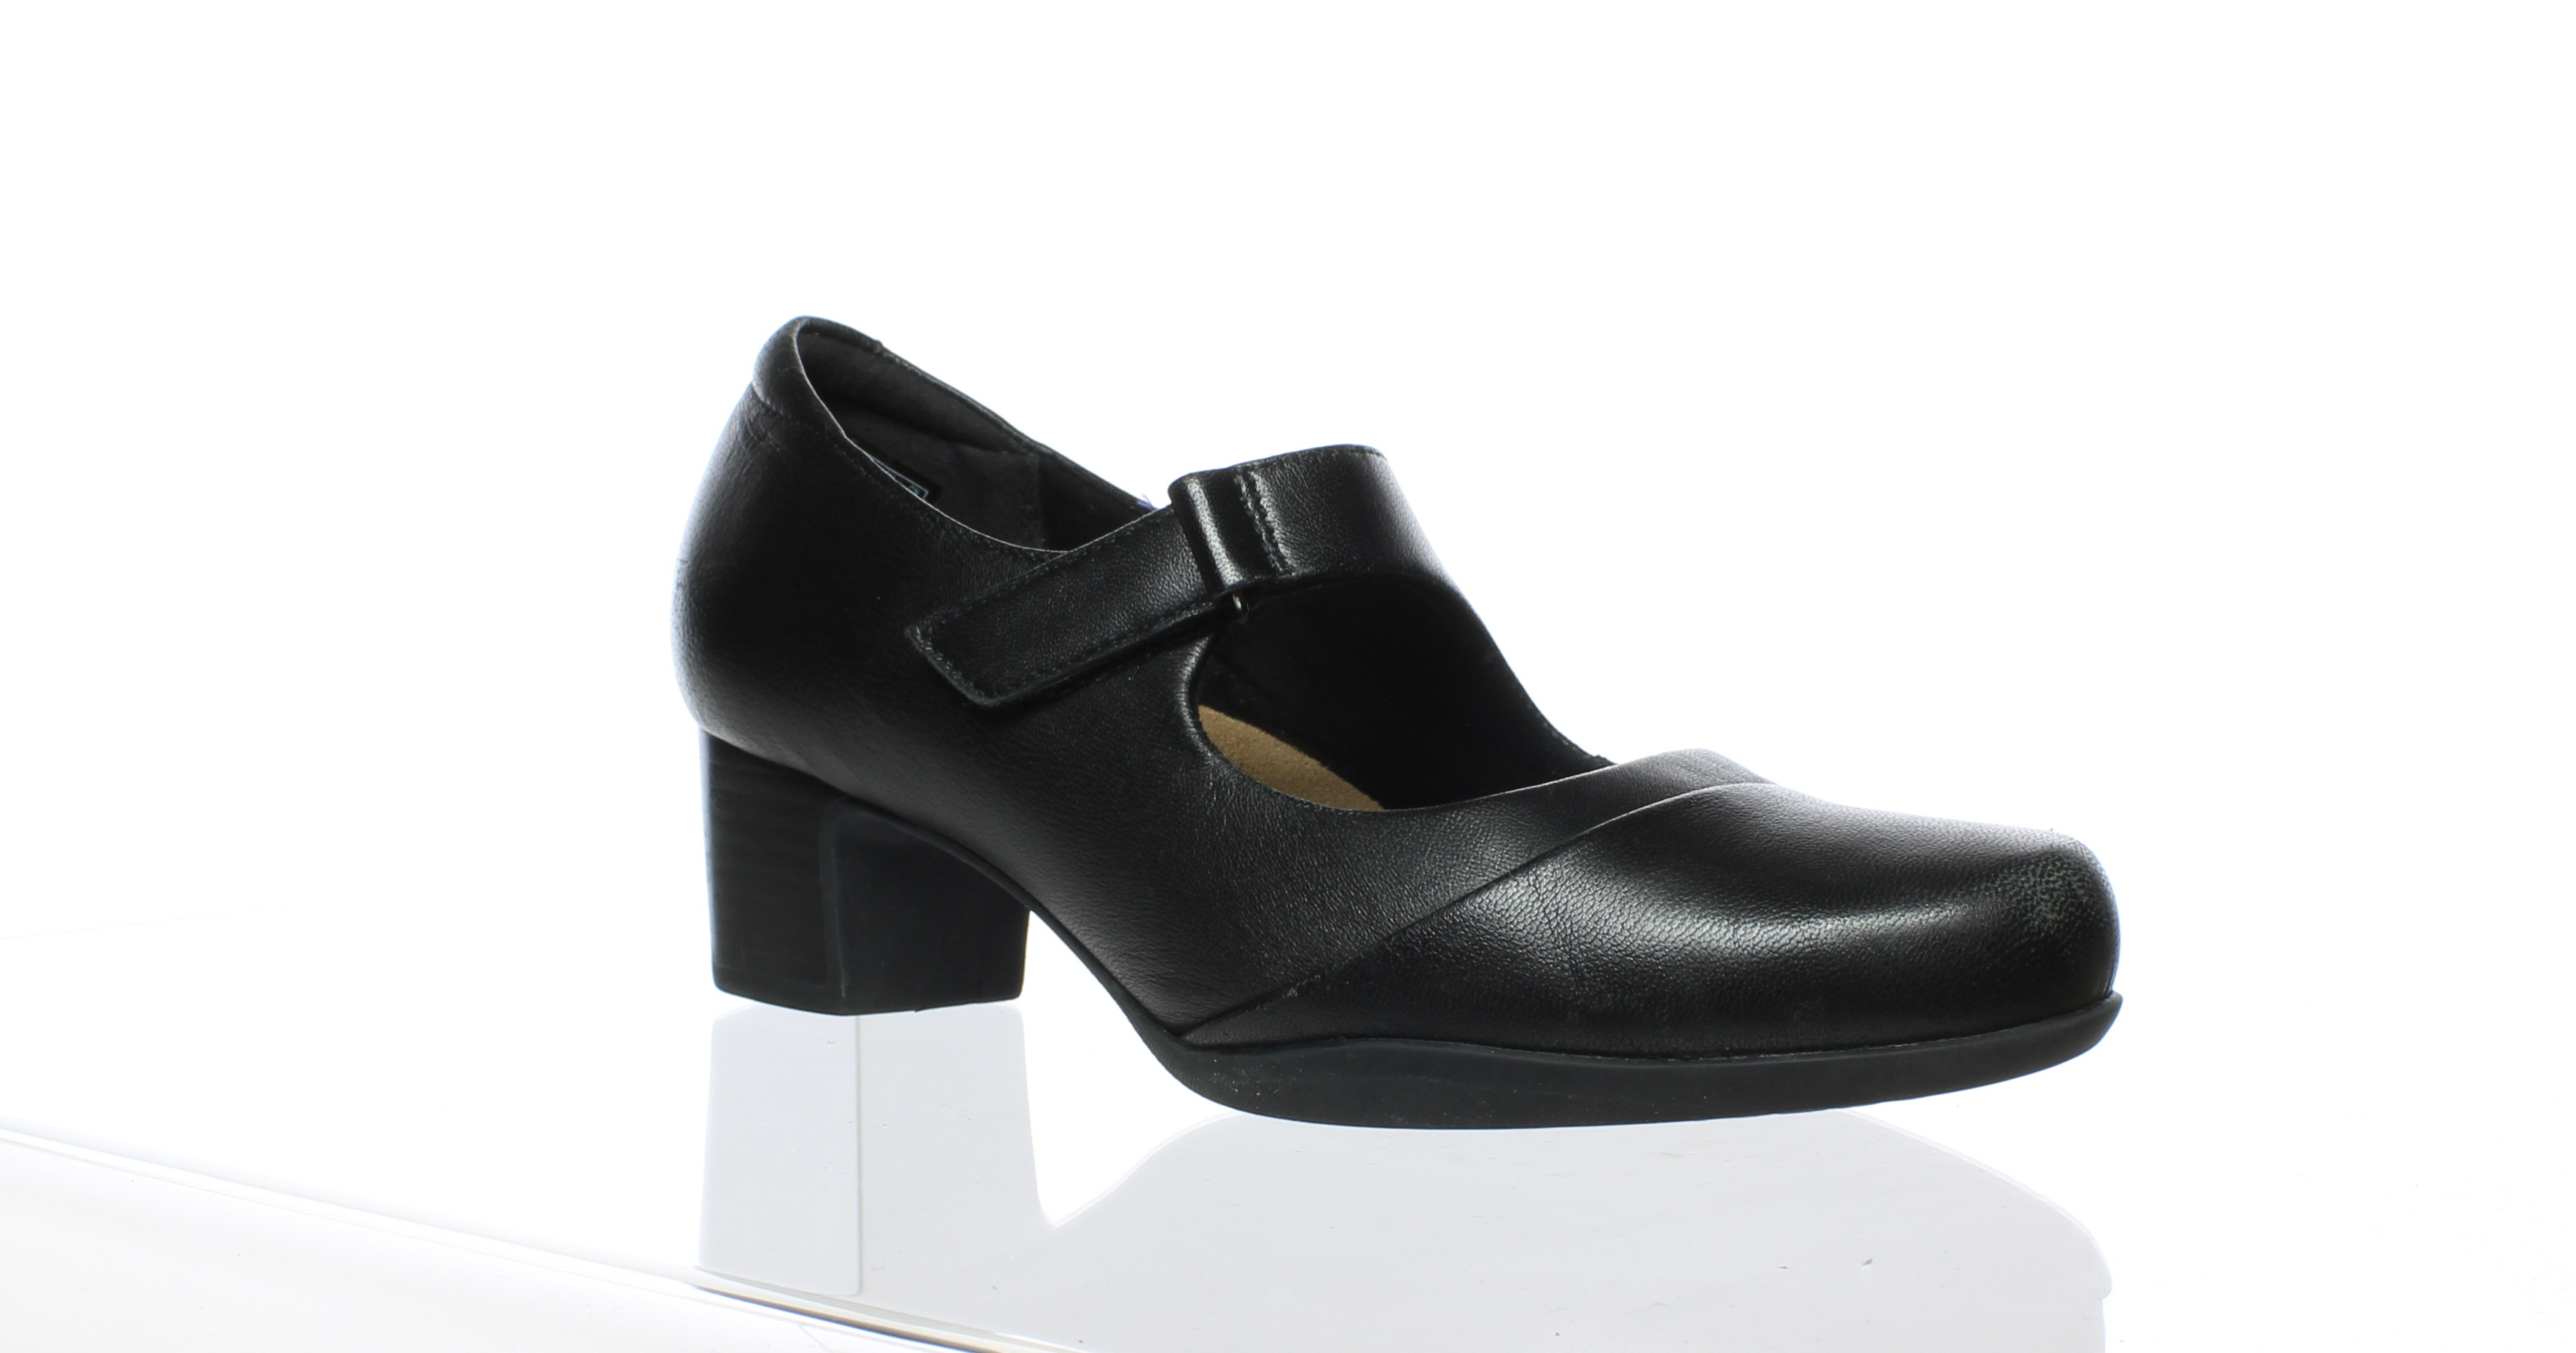 e30c9d77f014 Clarks Womens Black Leather Mary Jane Heels Size 7.5 (89422 ...